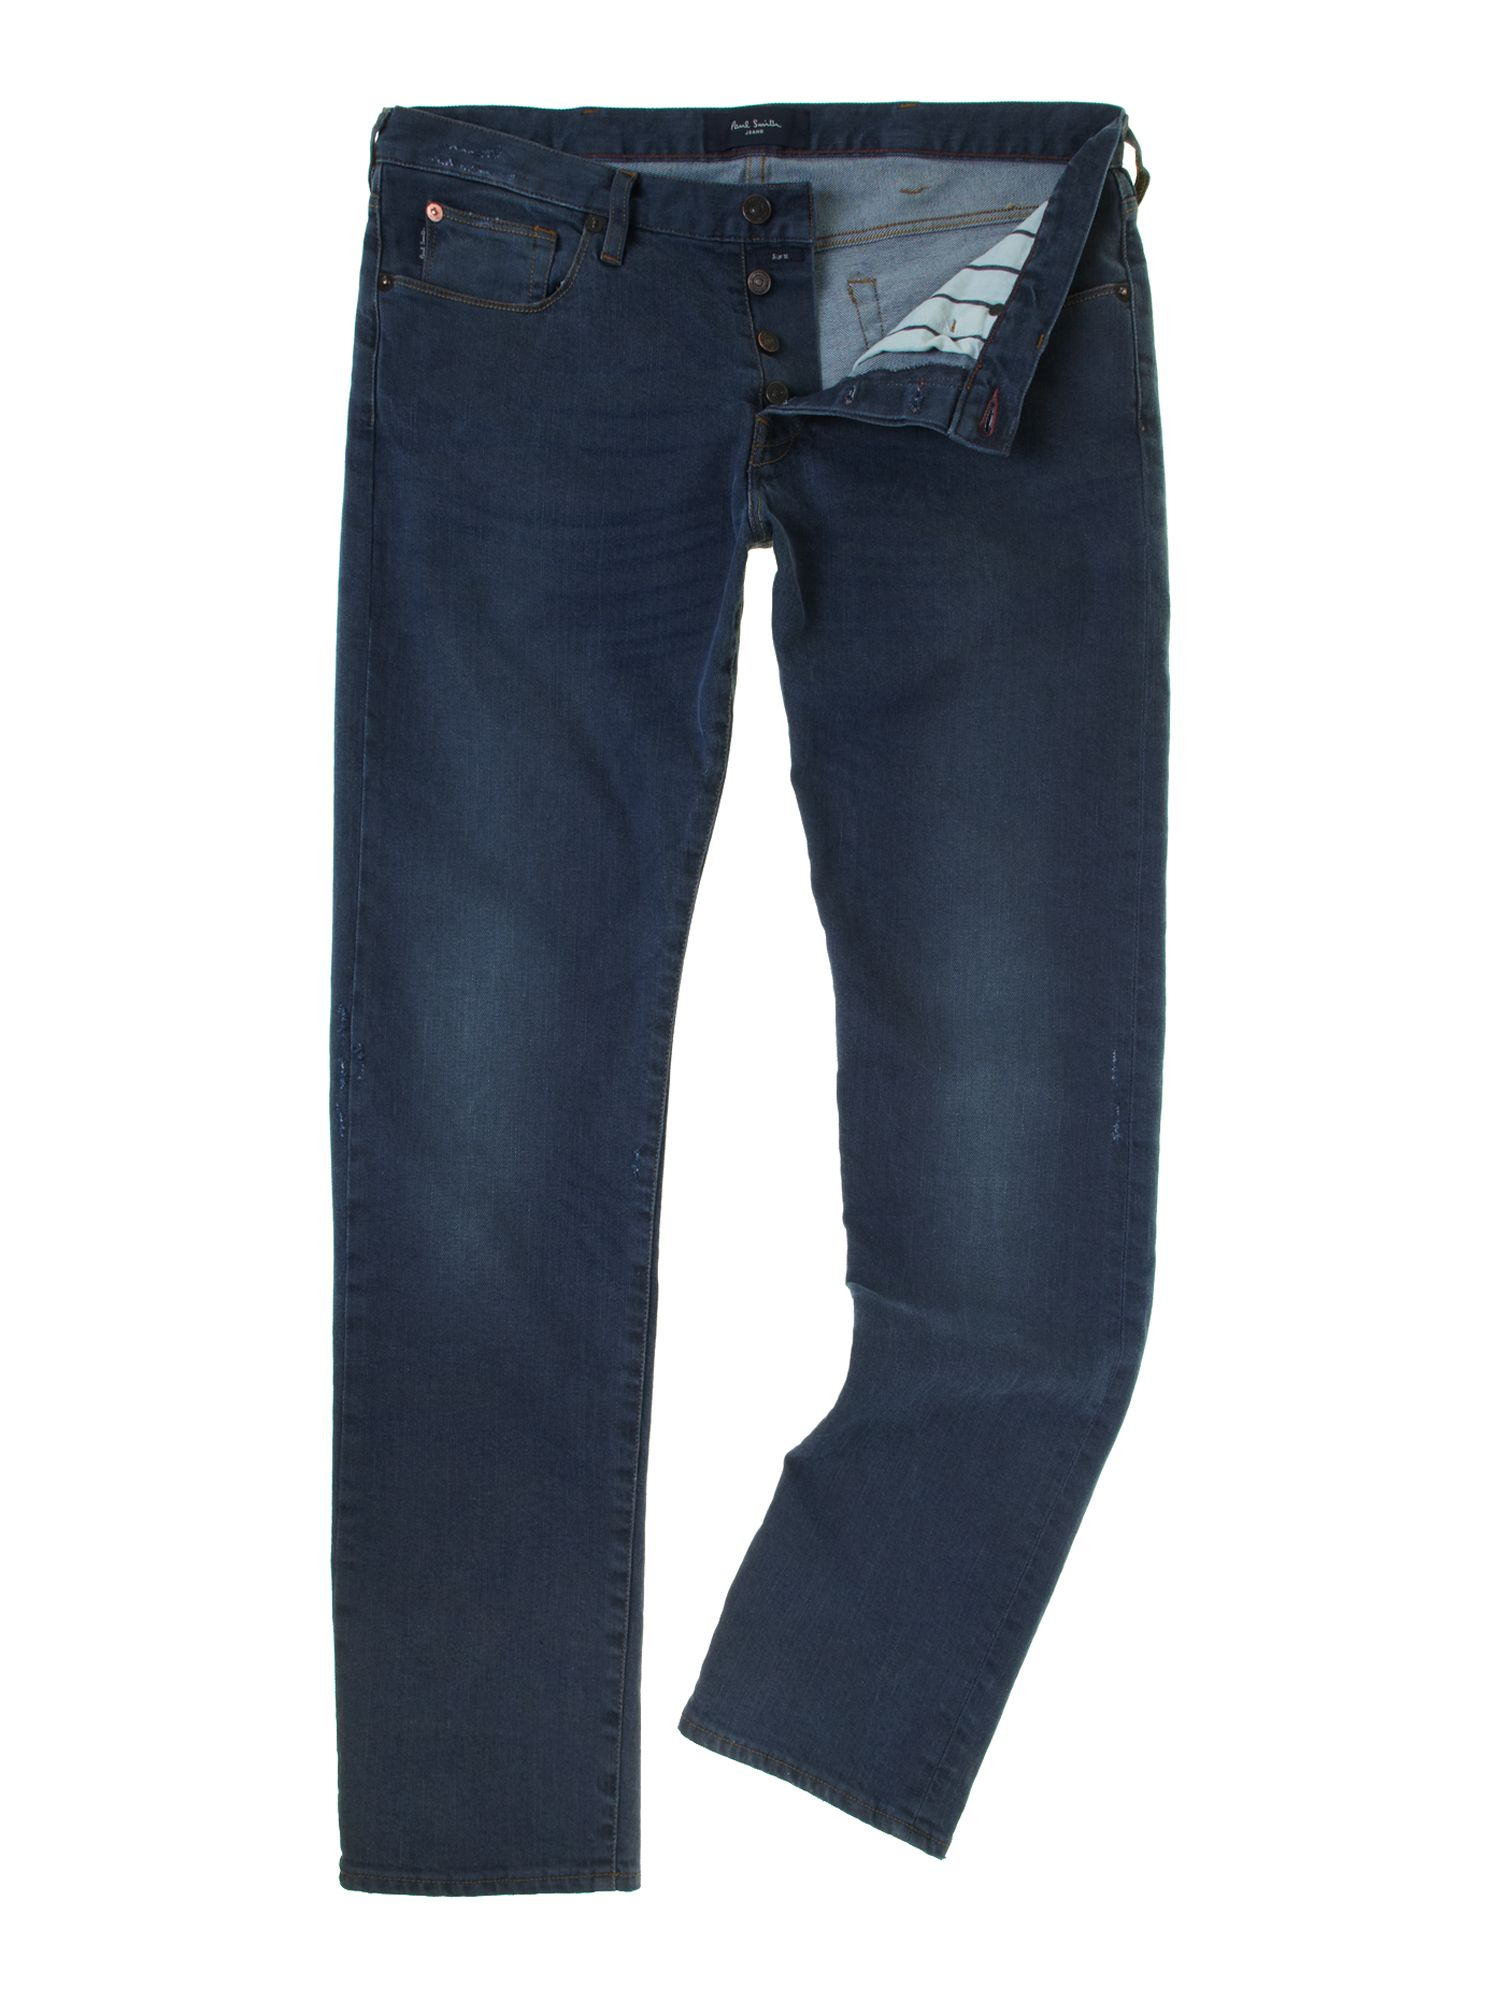 Tapered blue wash jeans